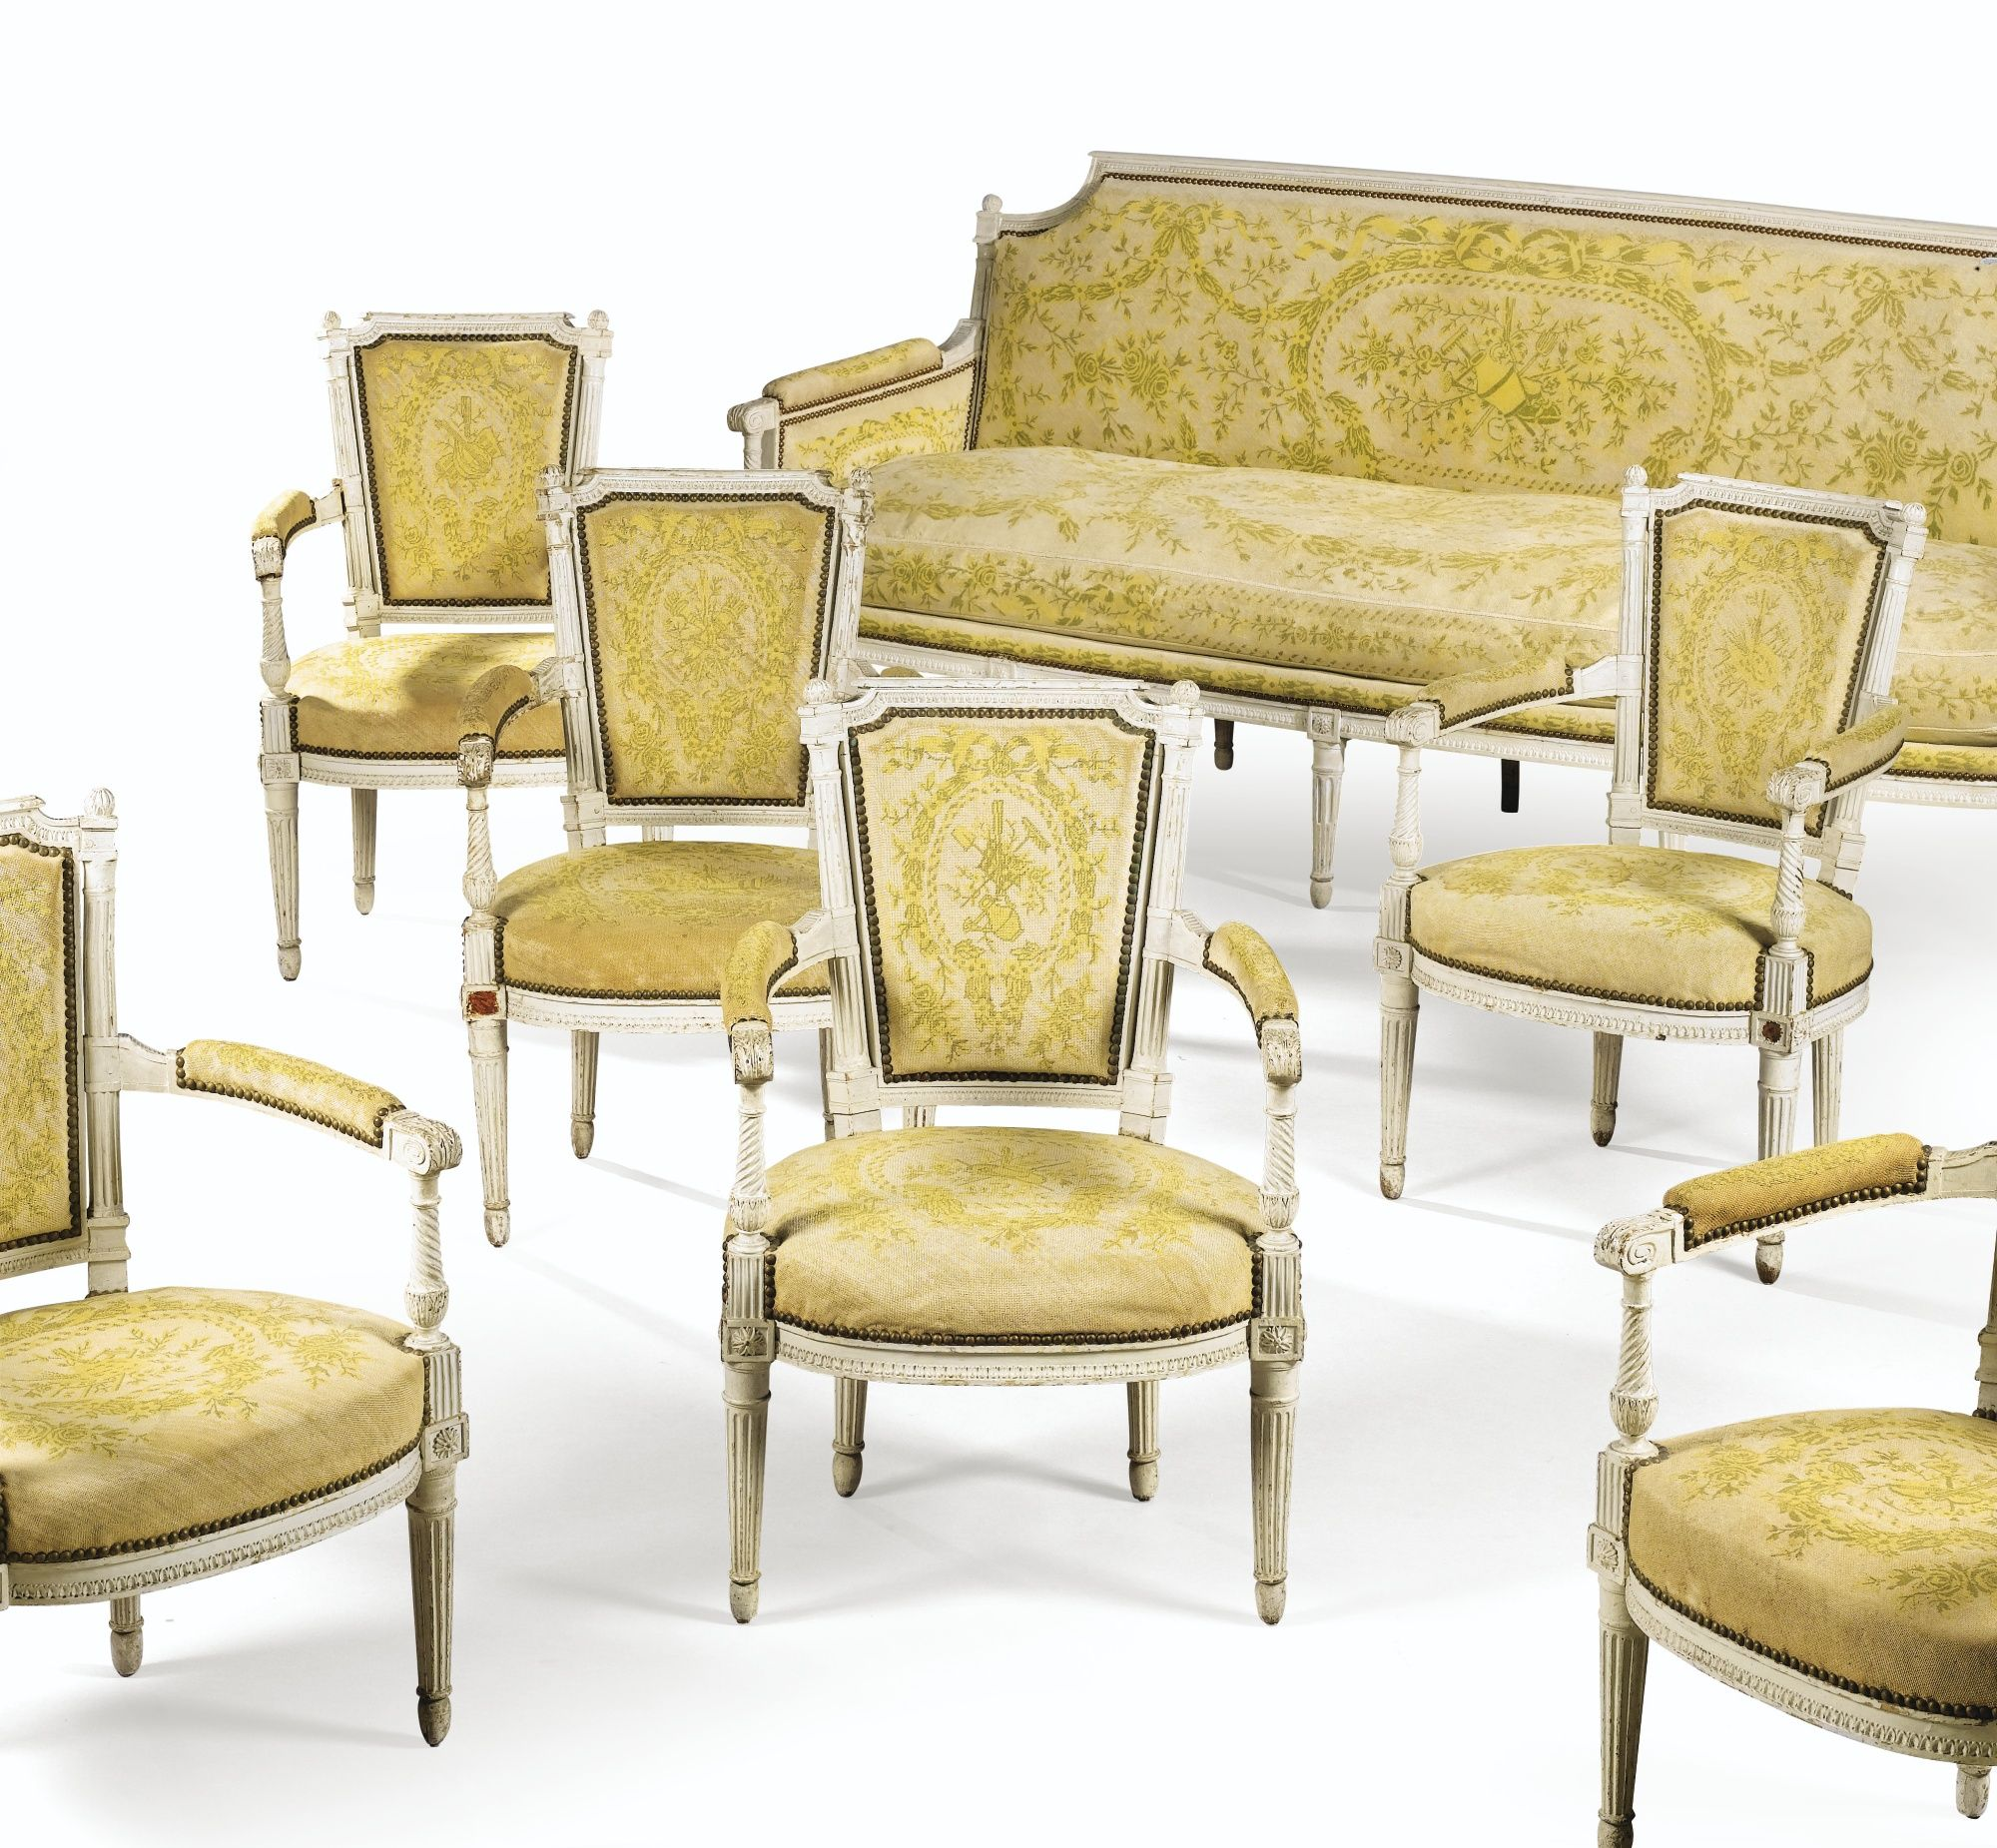 Date Unspecified A Set Of Six Cream Painted Armchairs And One Sofa Stamped Royer A Troyes Directoire Estimate 4 000 6 000 Eu Fauteuil Bois Mobilier Canape